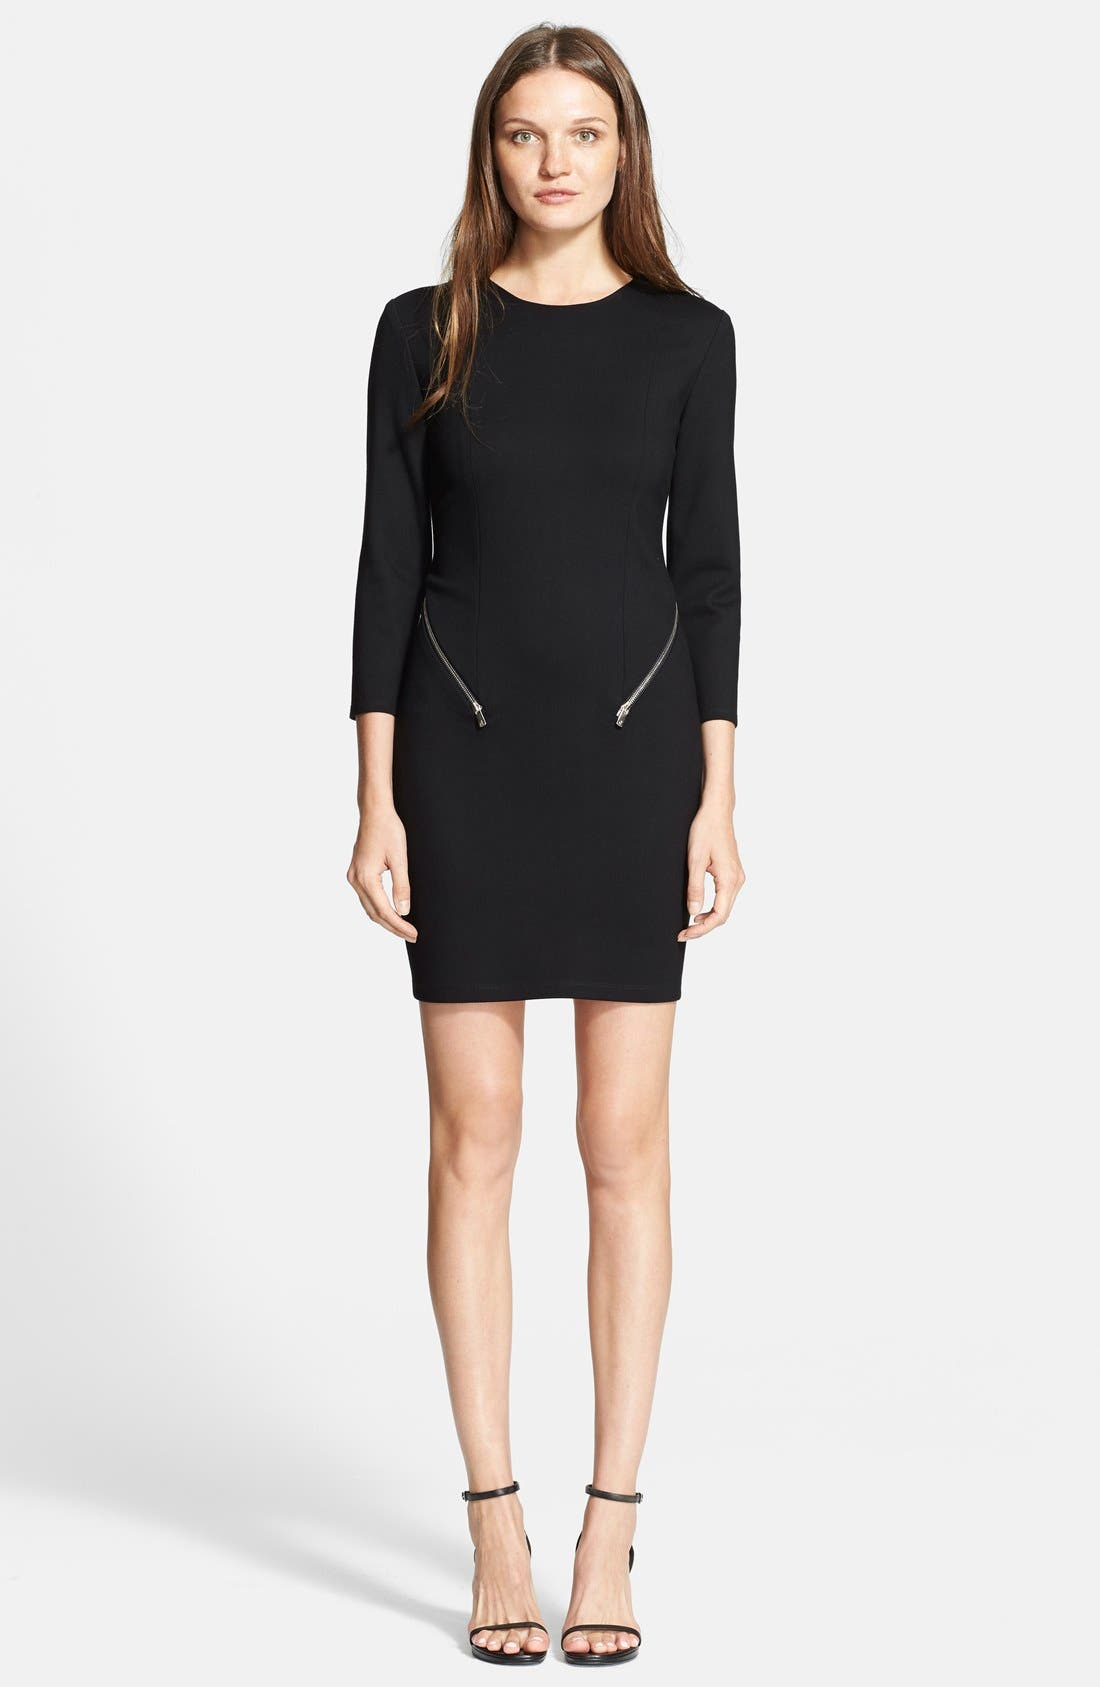 Alternate Image 1 Selected - Rebecca Minkoff 'Emmet' Dress